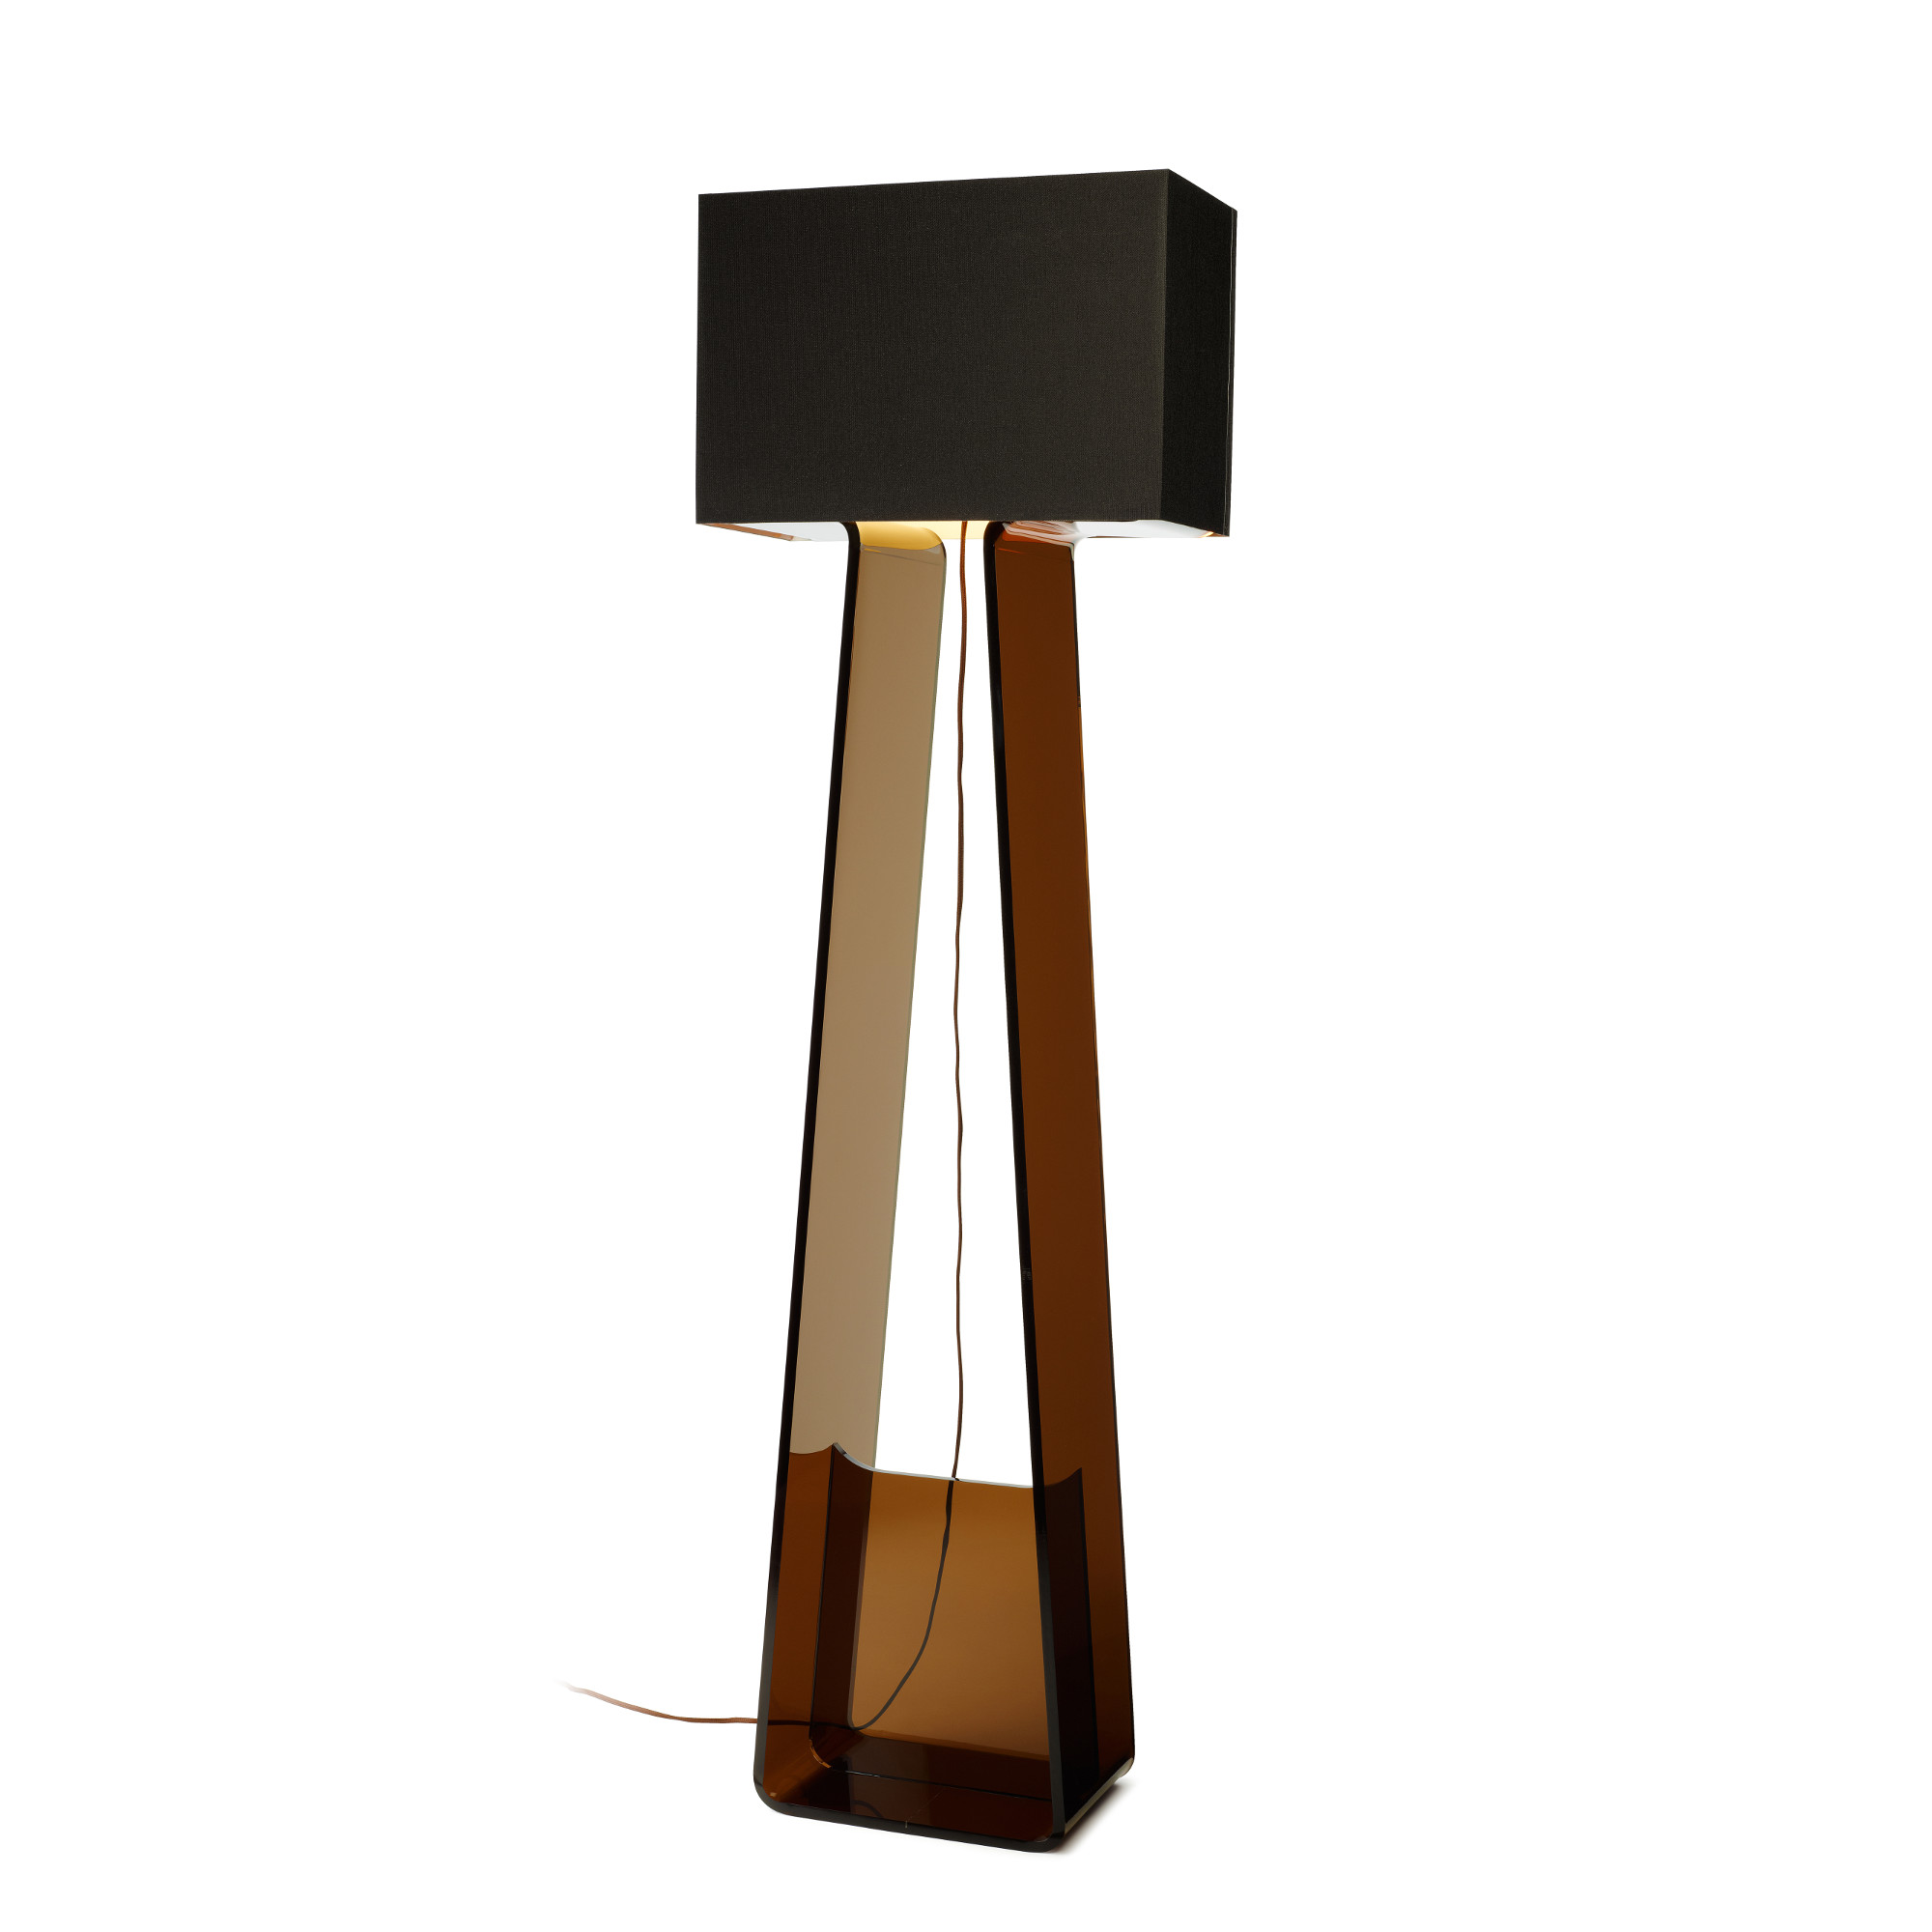 Tube top classic floor lamp by pablo tube 60 chrchr tube top classic floor lamp by pablo aloadofball Choice Image